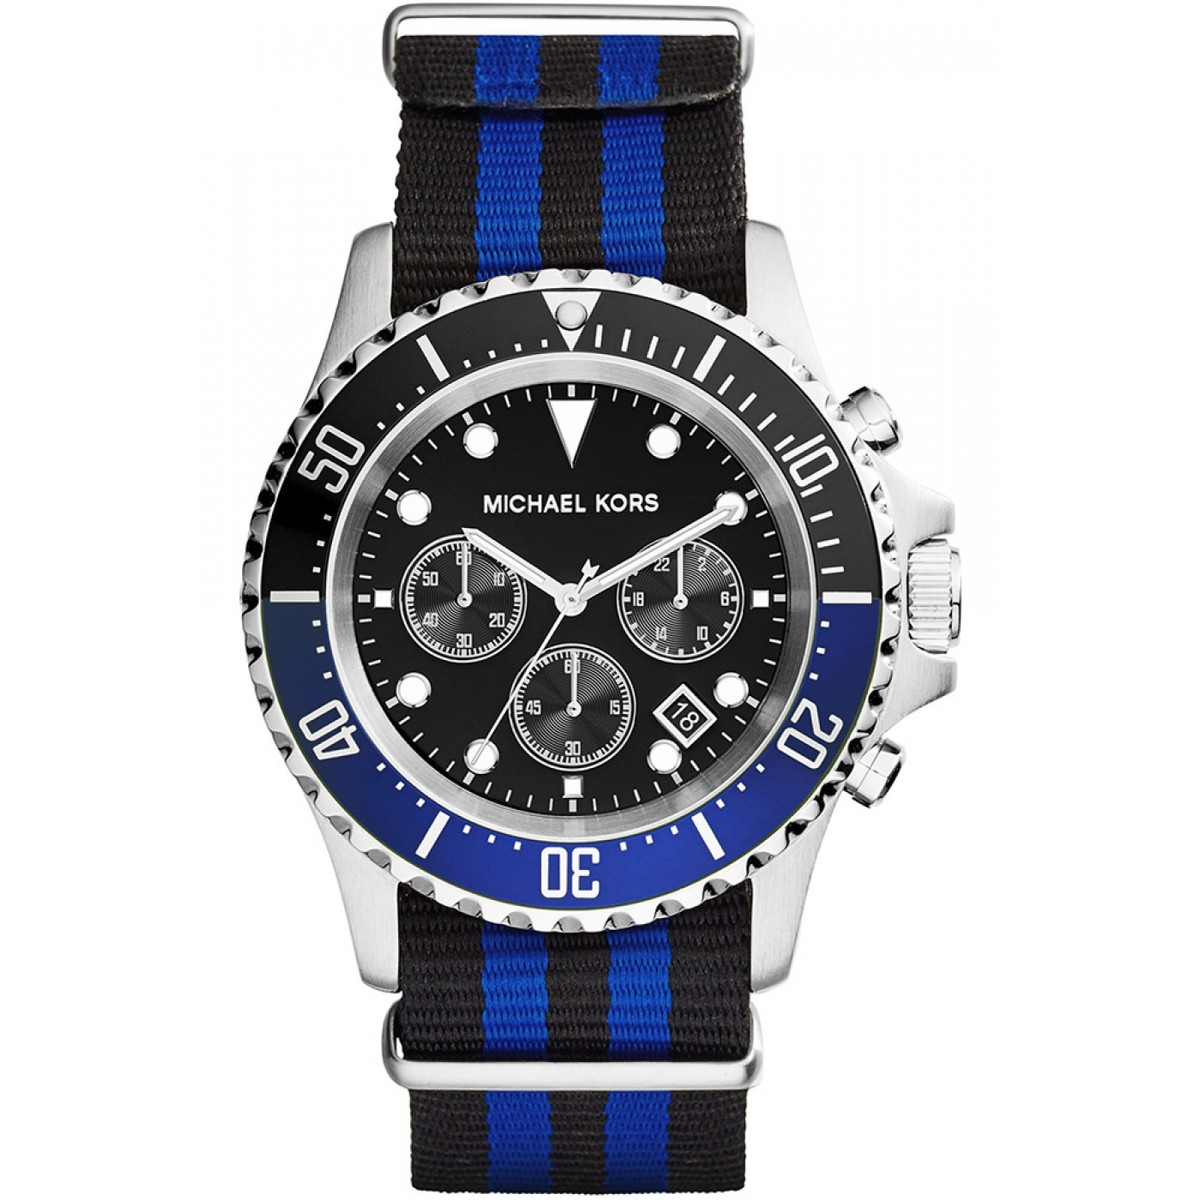 Ceas barbatesc Michael Kors Everest MK8398 de mana original